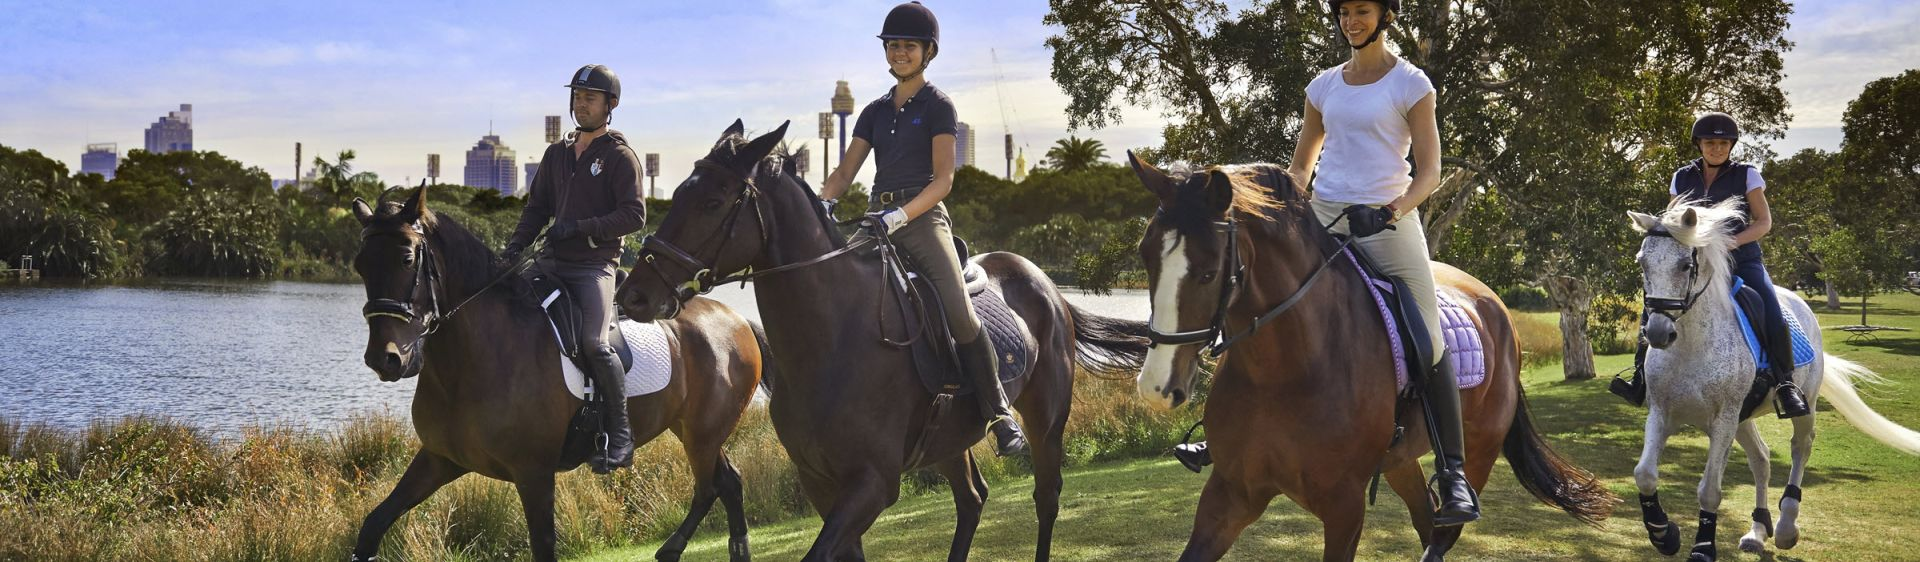 Horse riding sydney northern beaches